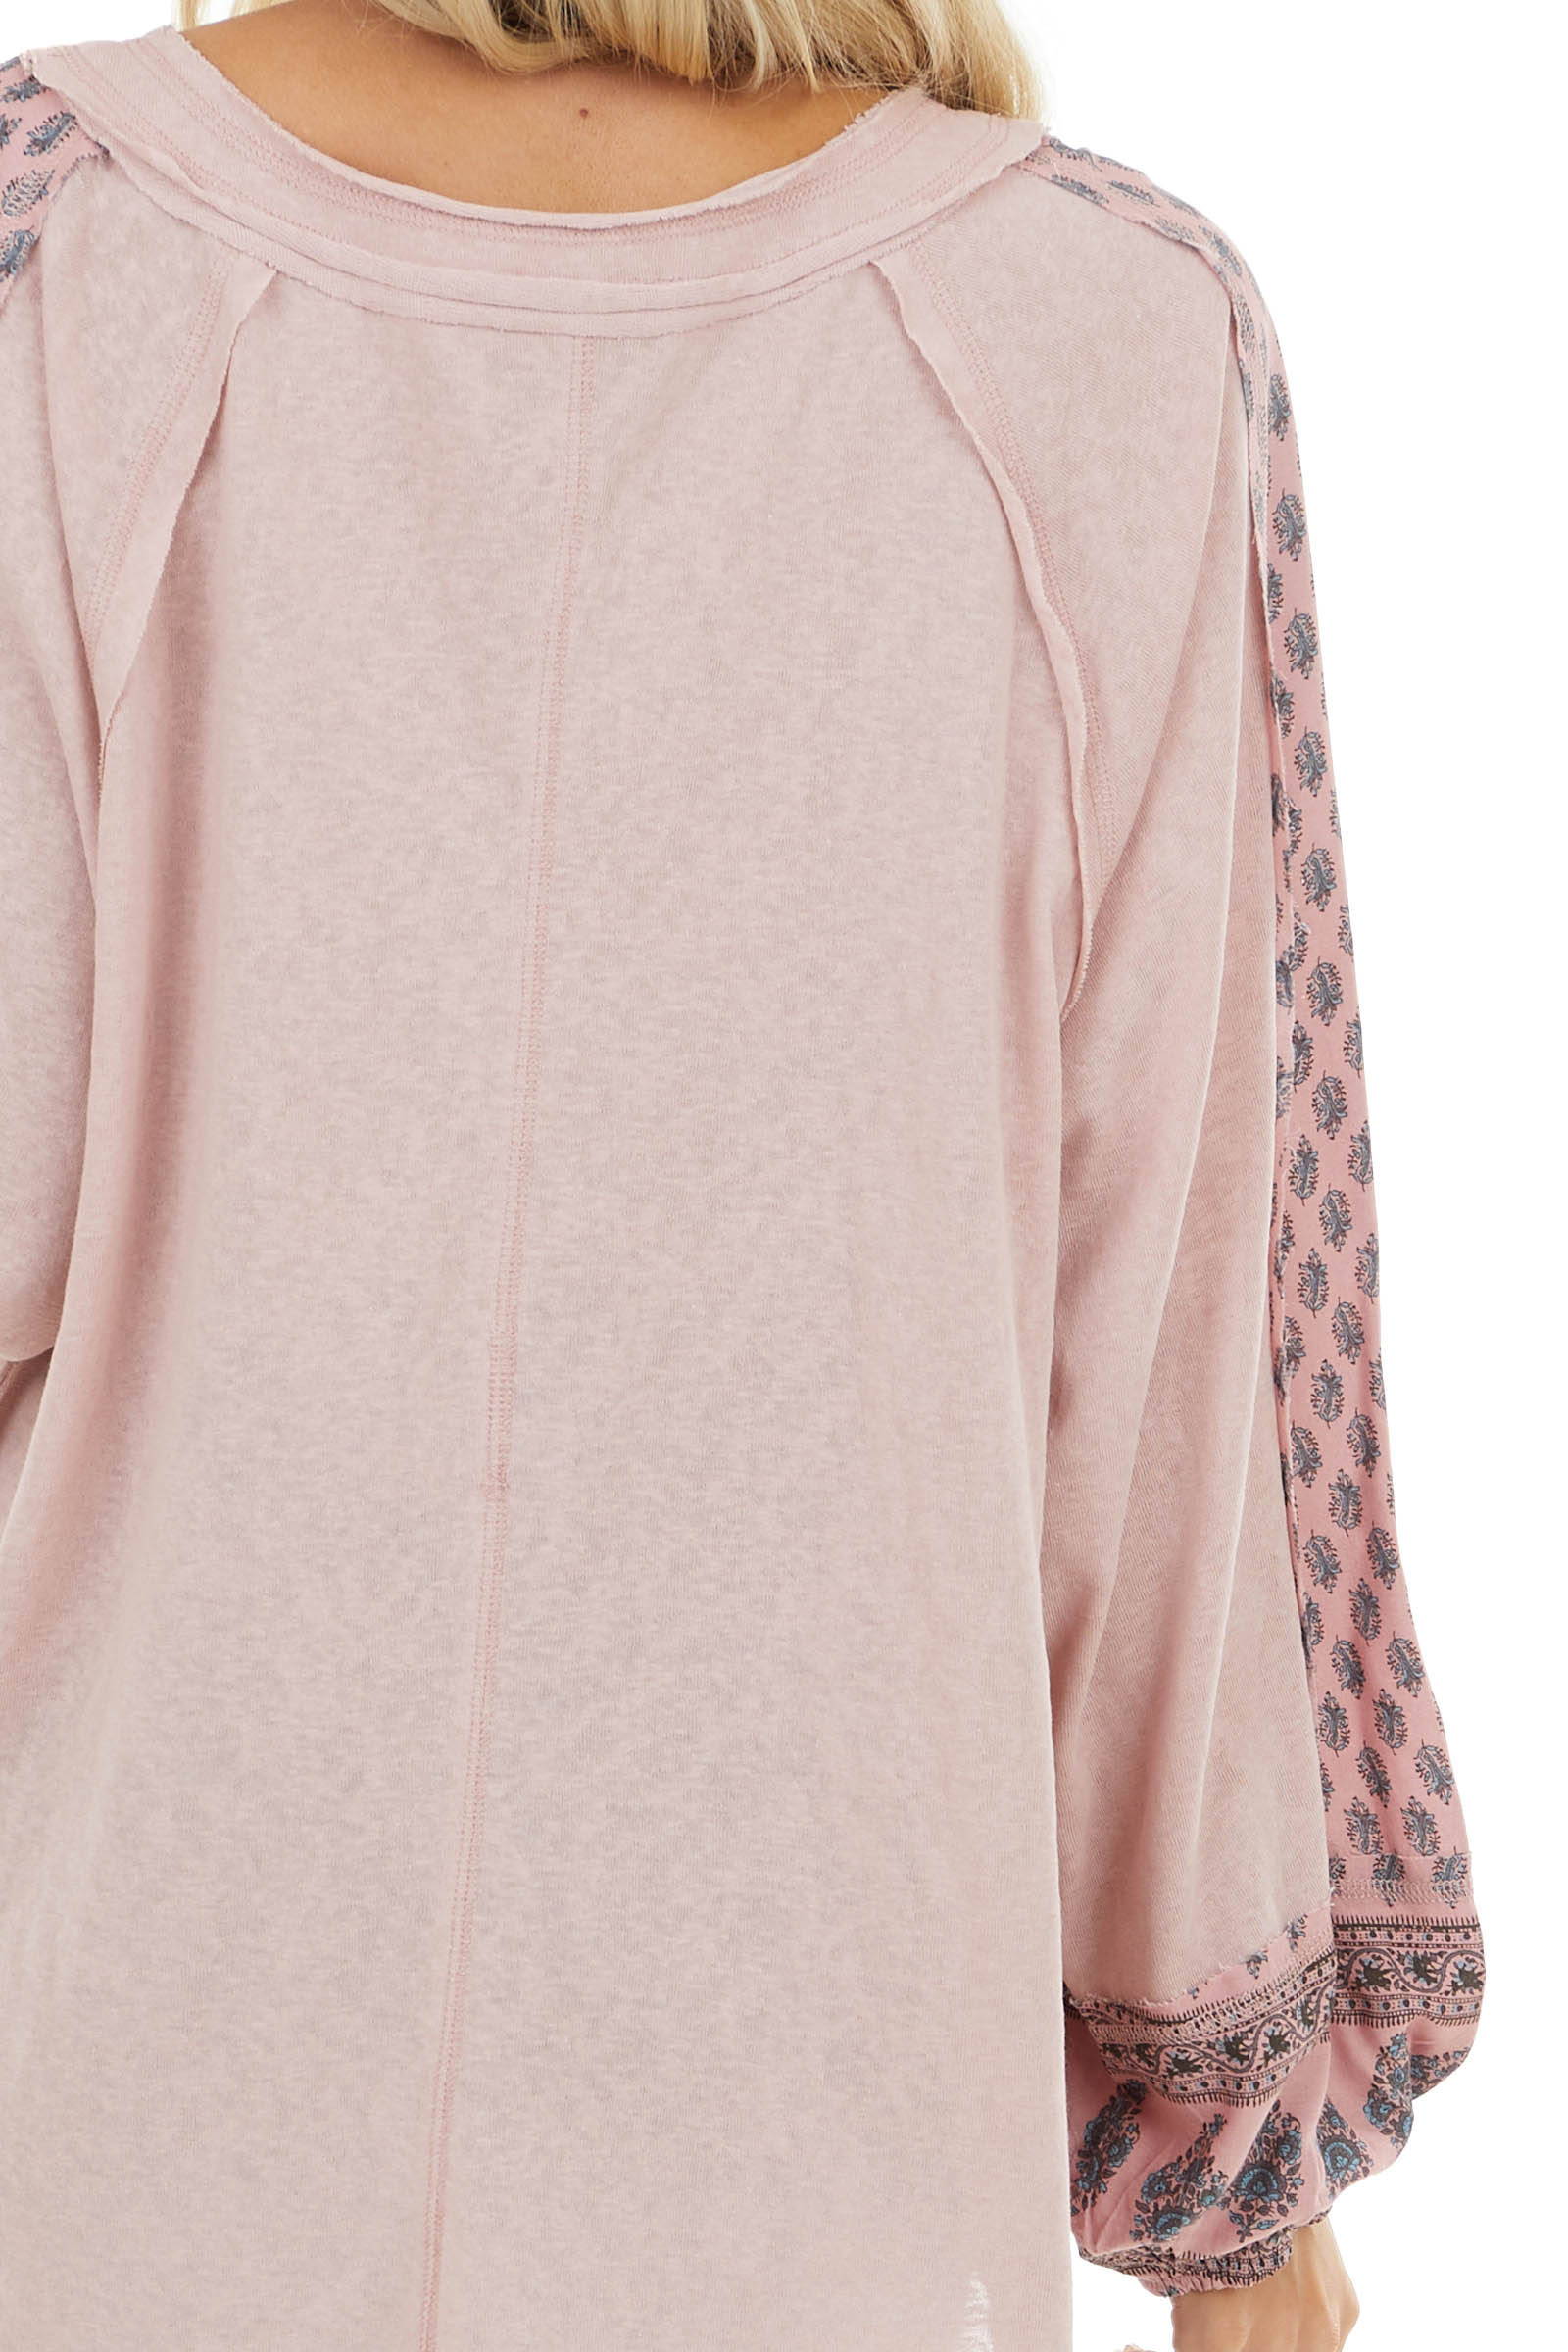 Dusty Blush Long Sleeve Top with Patterned Contrast Detail